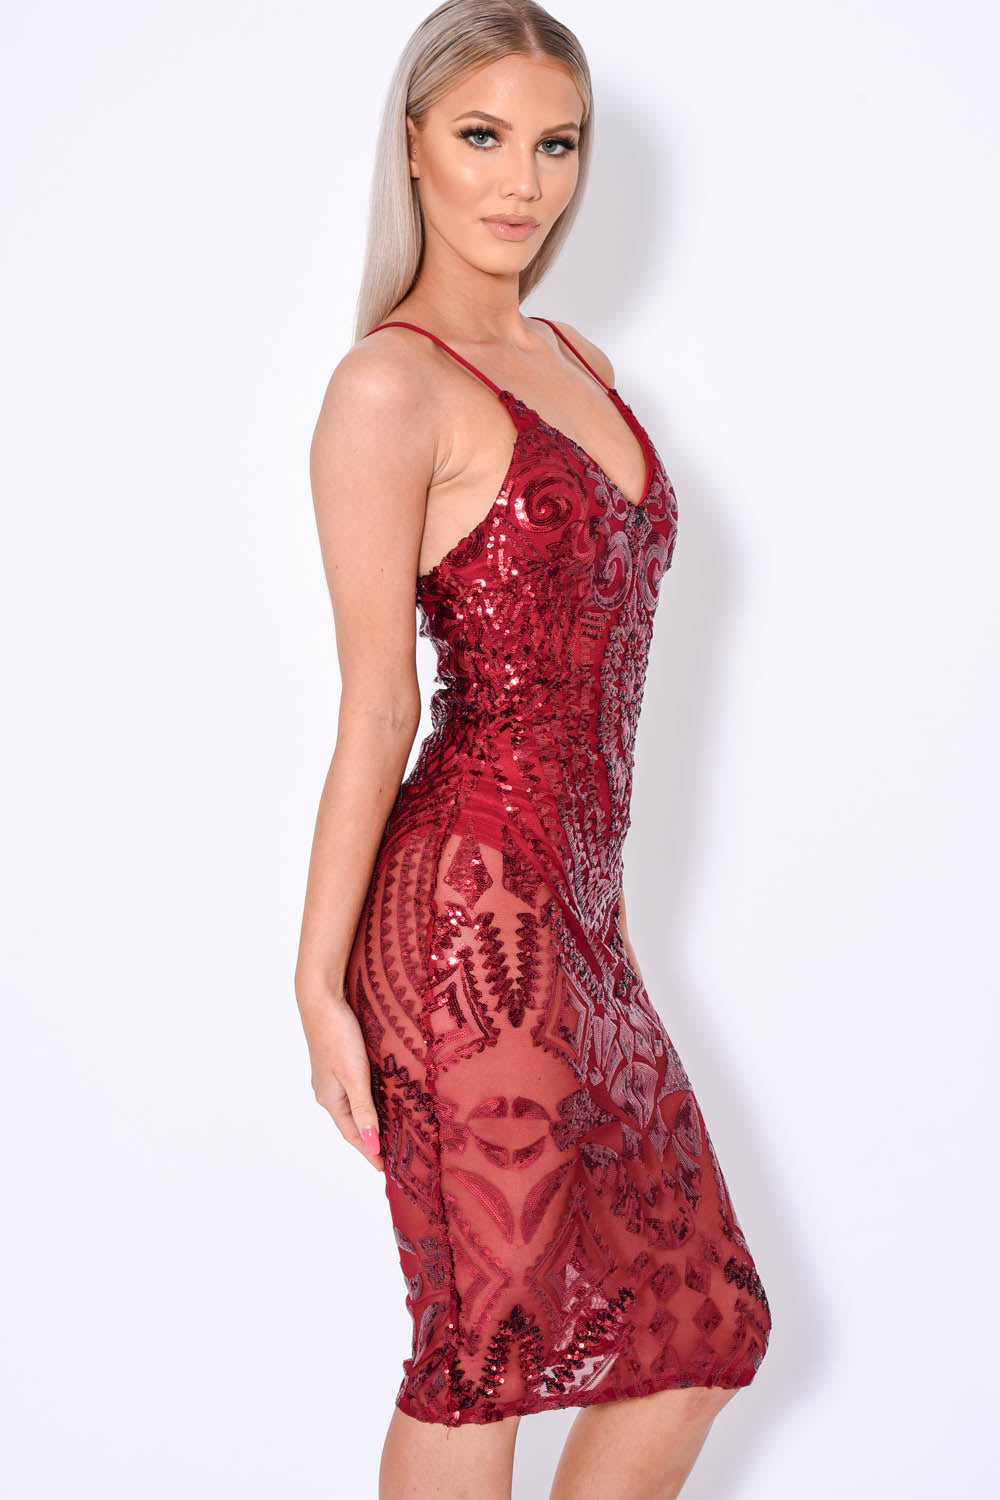 Body On Me Luxe Berry Sequin Sheer Bodysuit Midi Dress